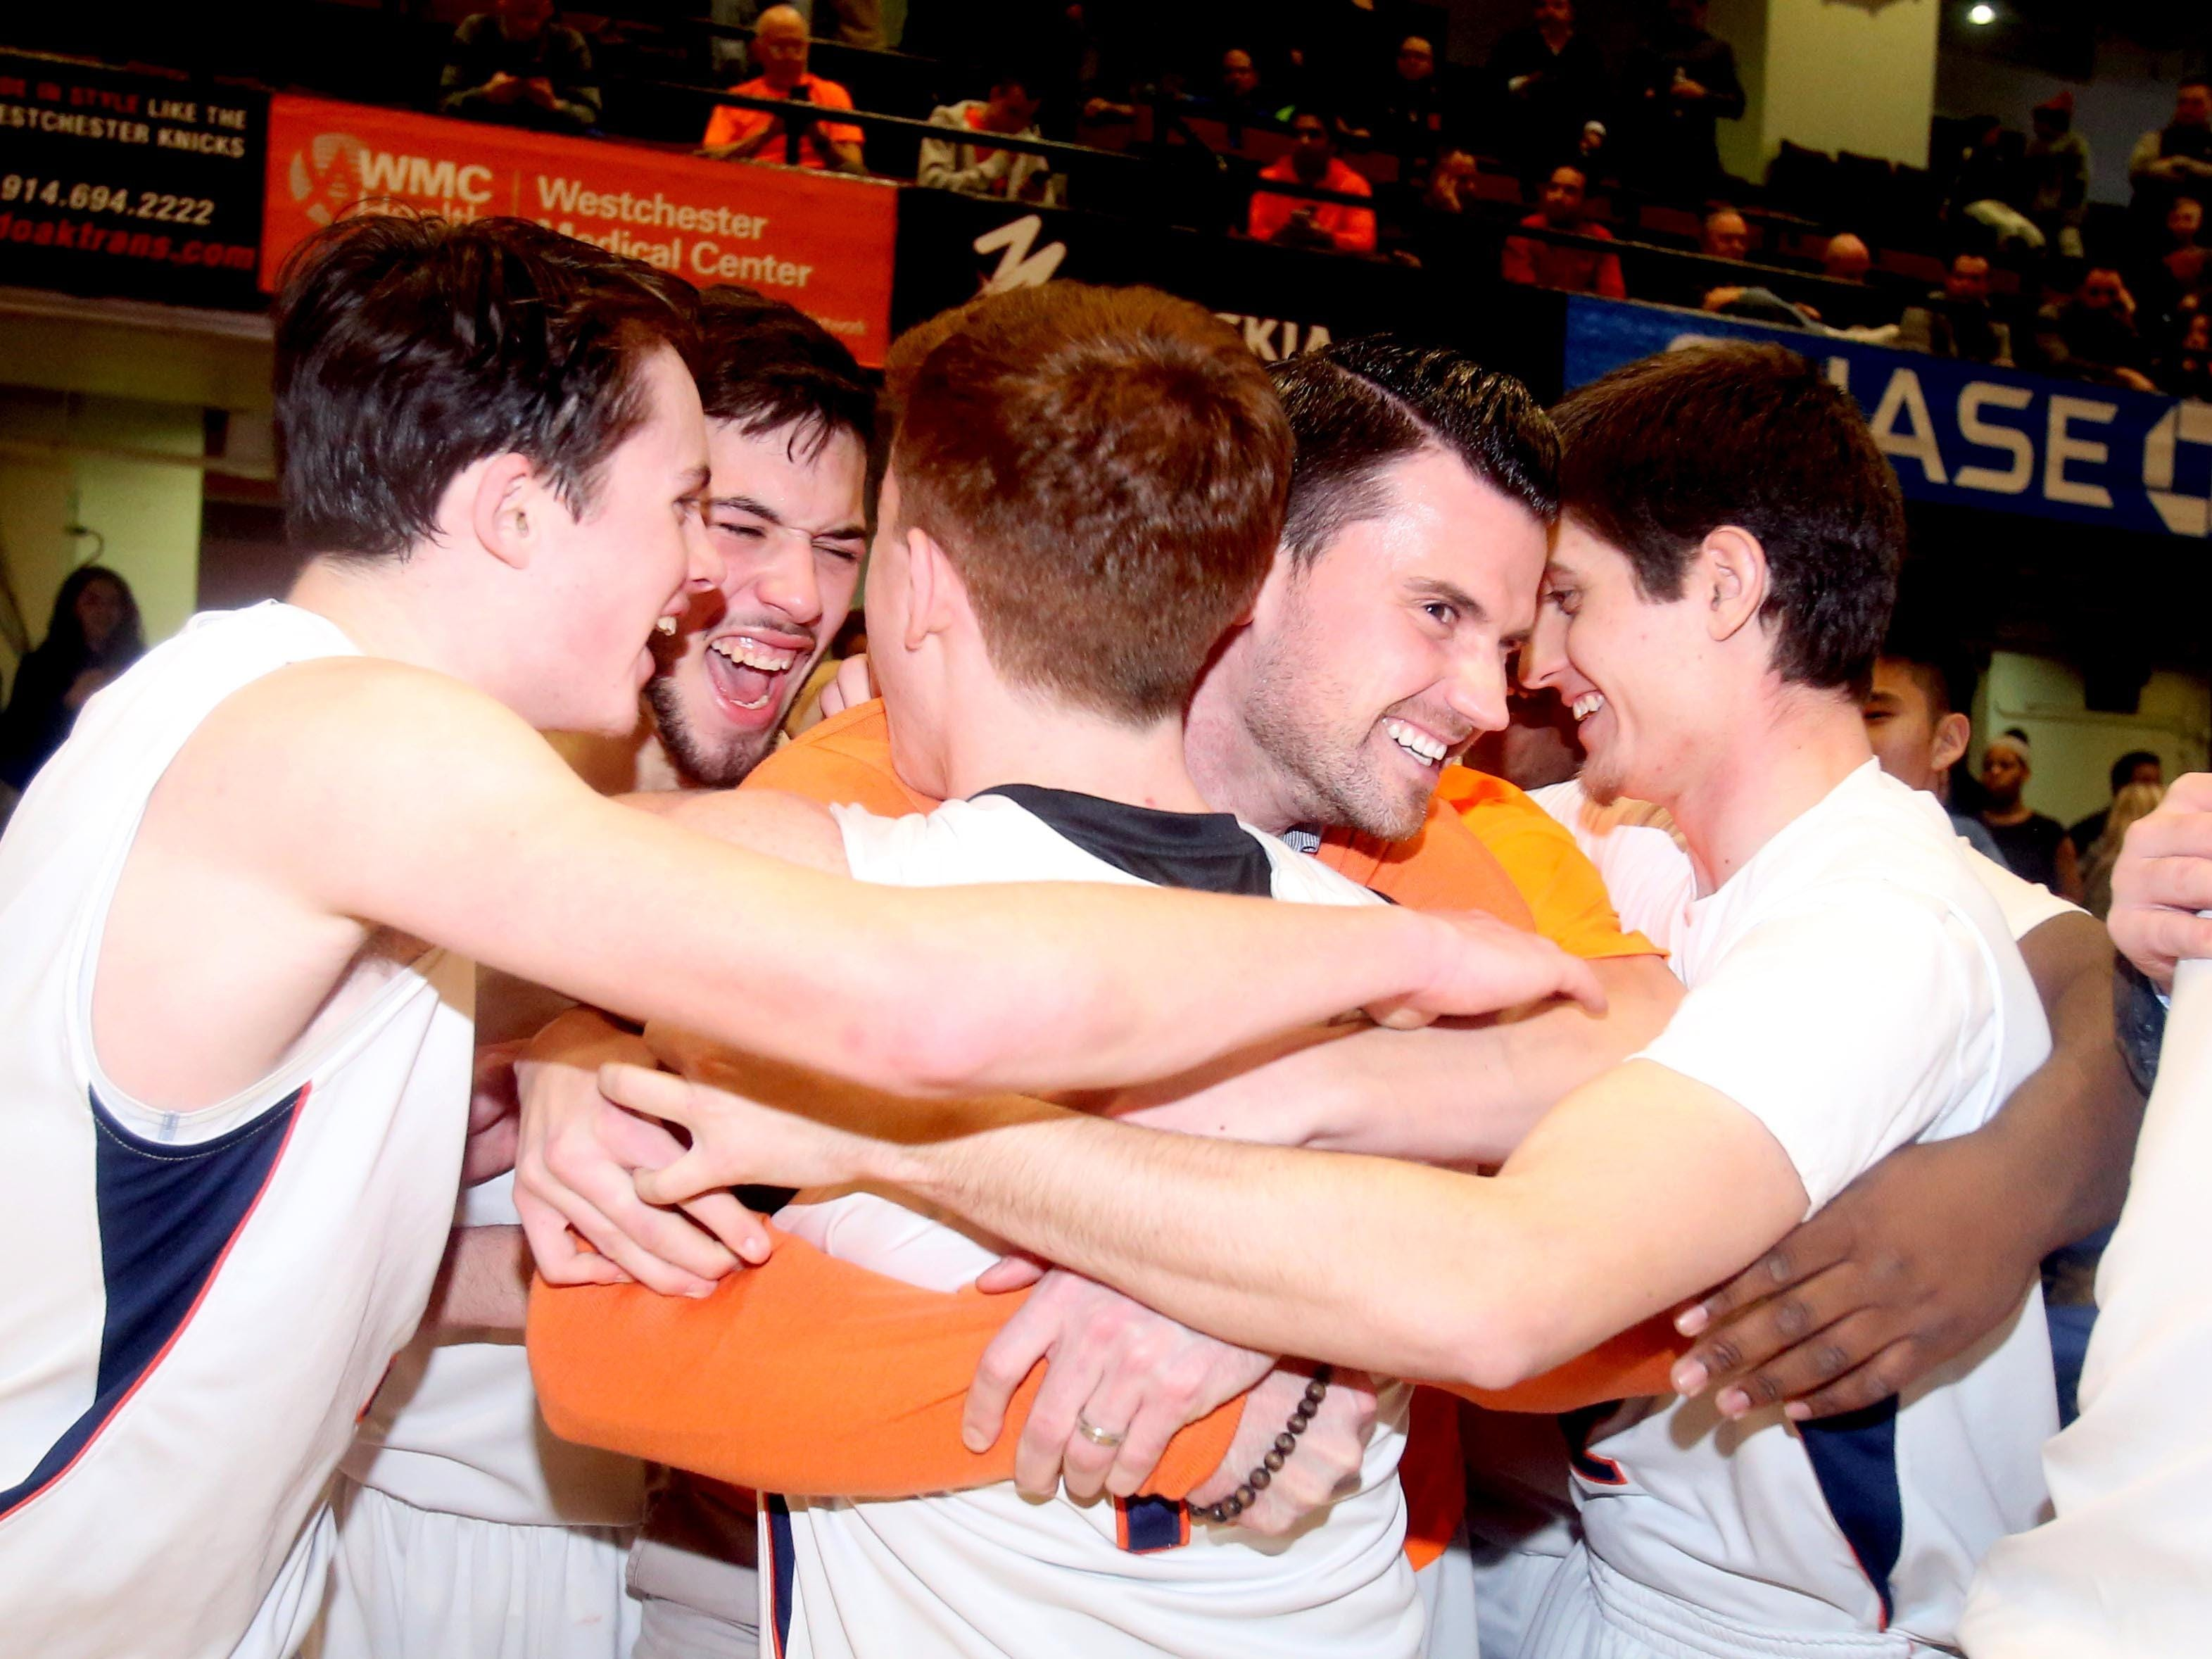 Briarcliff celebrates after defeating Putnam Valley 53-42 to win the Section 1 Class B basketball championship at the Westchester County Center in White Plains.